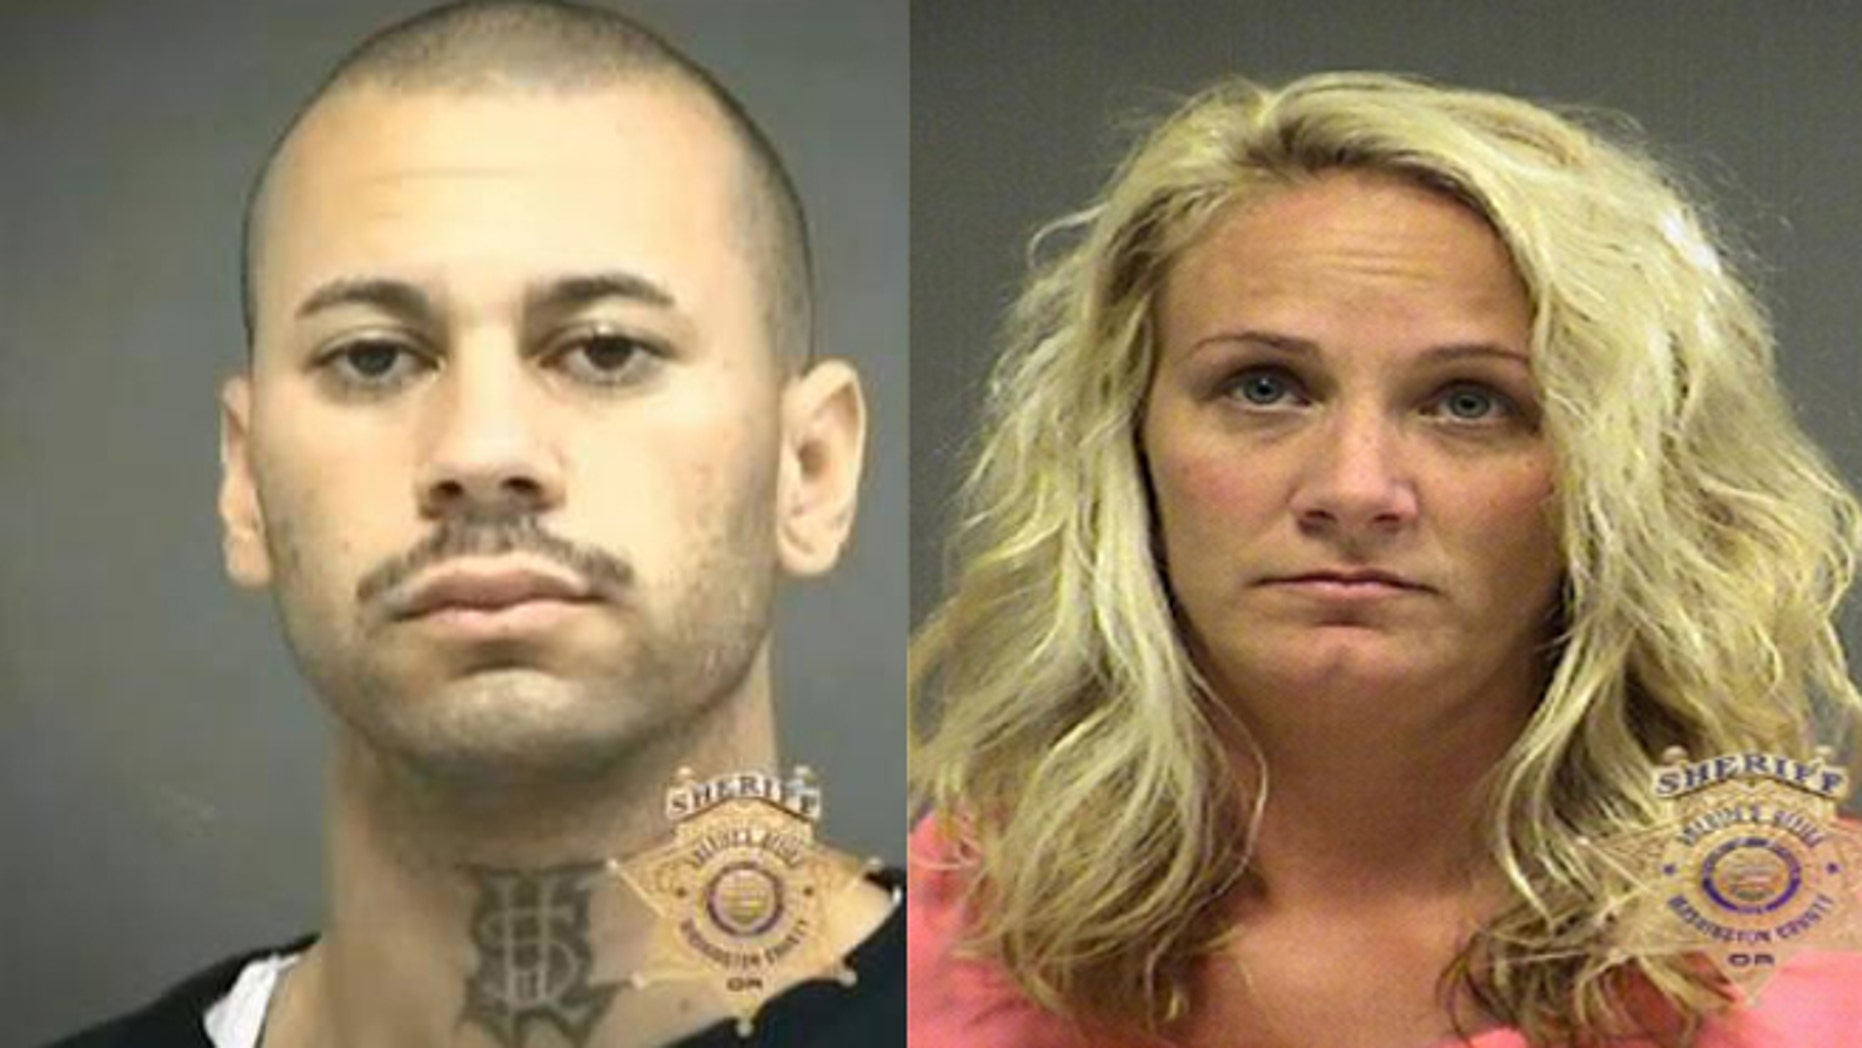 Jill Curry (R) was convicted to just over four years in prison for sneaking Jeng-Li Delgado-Galban (L) out of his prison cell to have sex in a supply closest when Curry worked as a jail technician in Oregon.